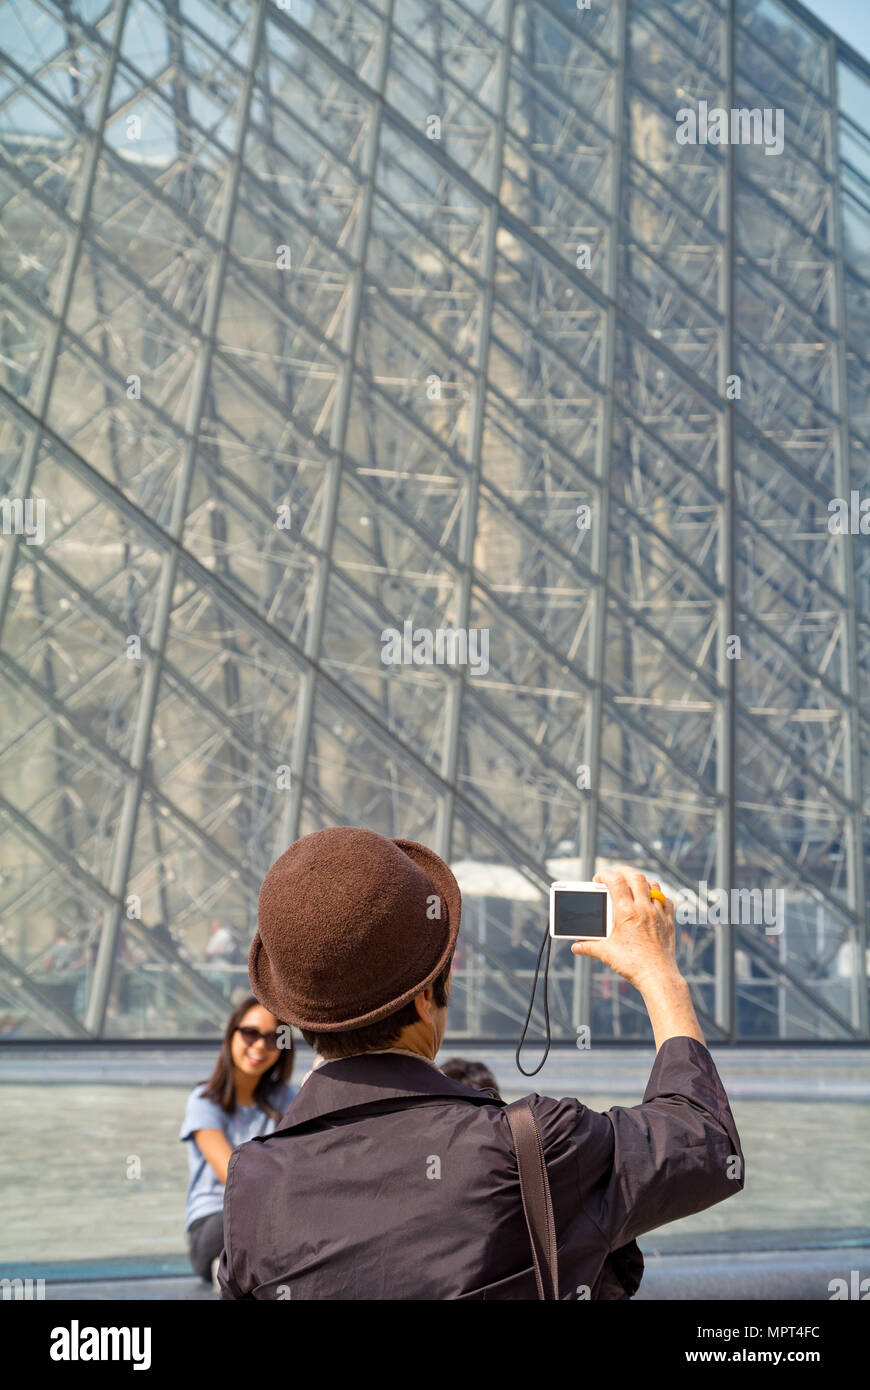 An Asian female tourist taking a photo at pyramid of Louvre Museum, Paris, France - Stock Image